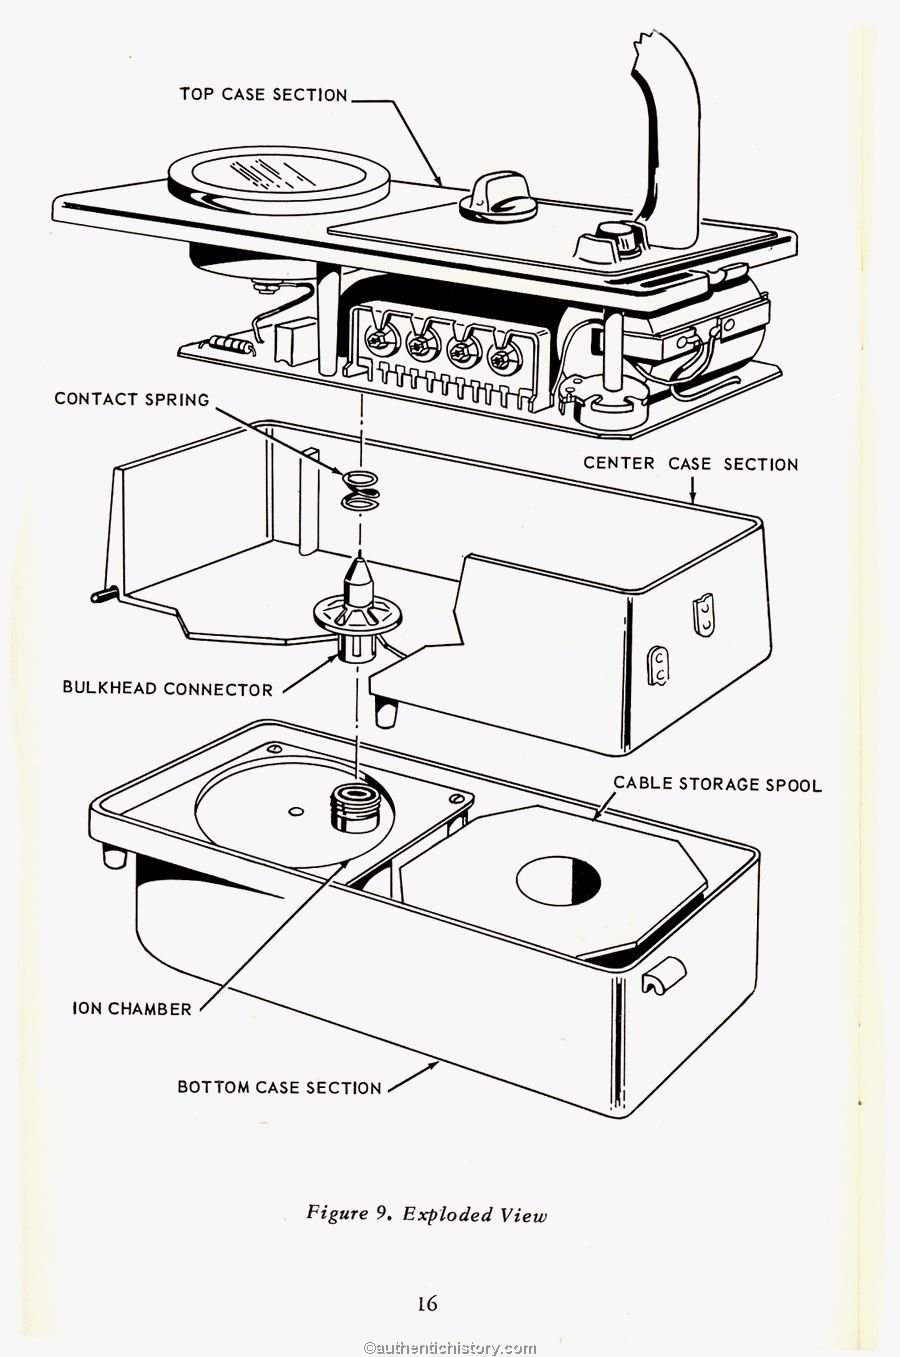 Radiological Survey Meter & Maintenance Manual (1964)